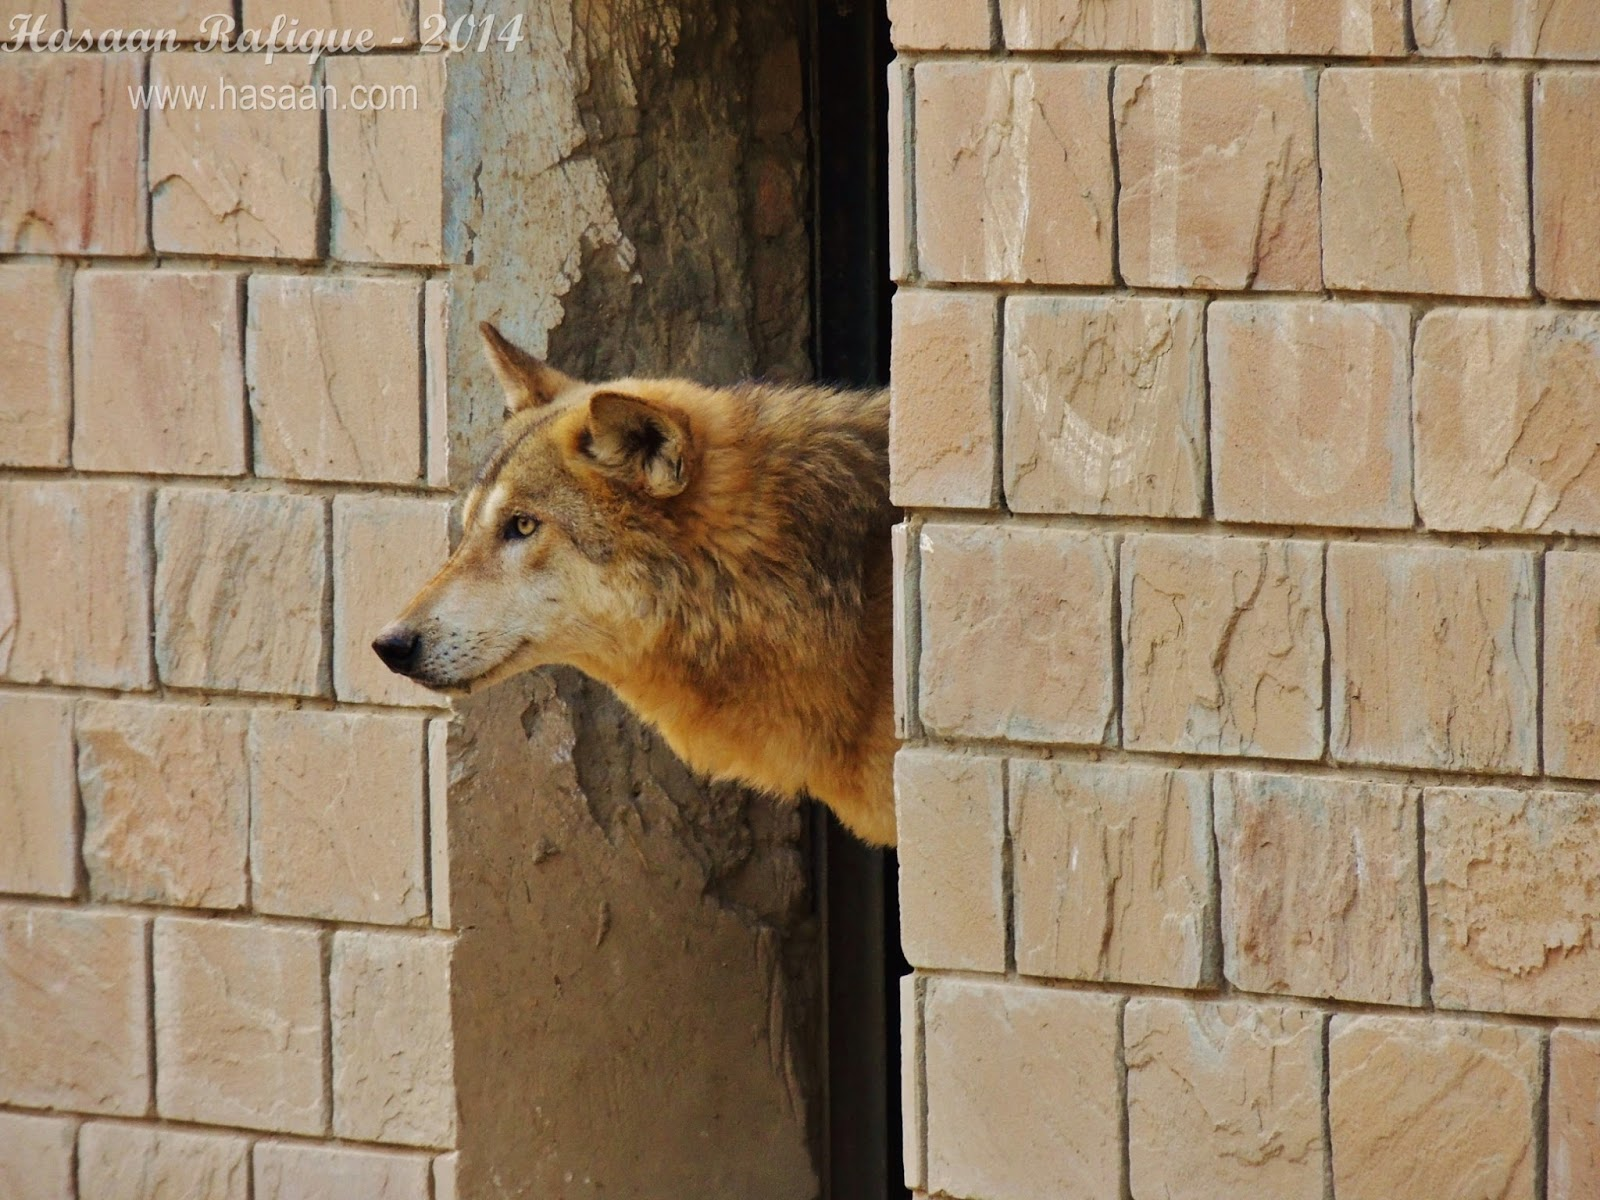 A wolf looking out of its chamber in the zoo. I had only a few seconds to capture this sight.